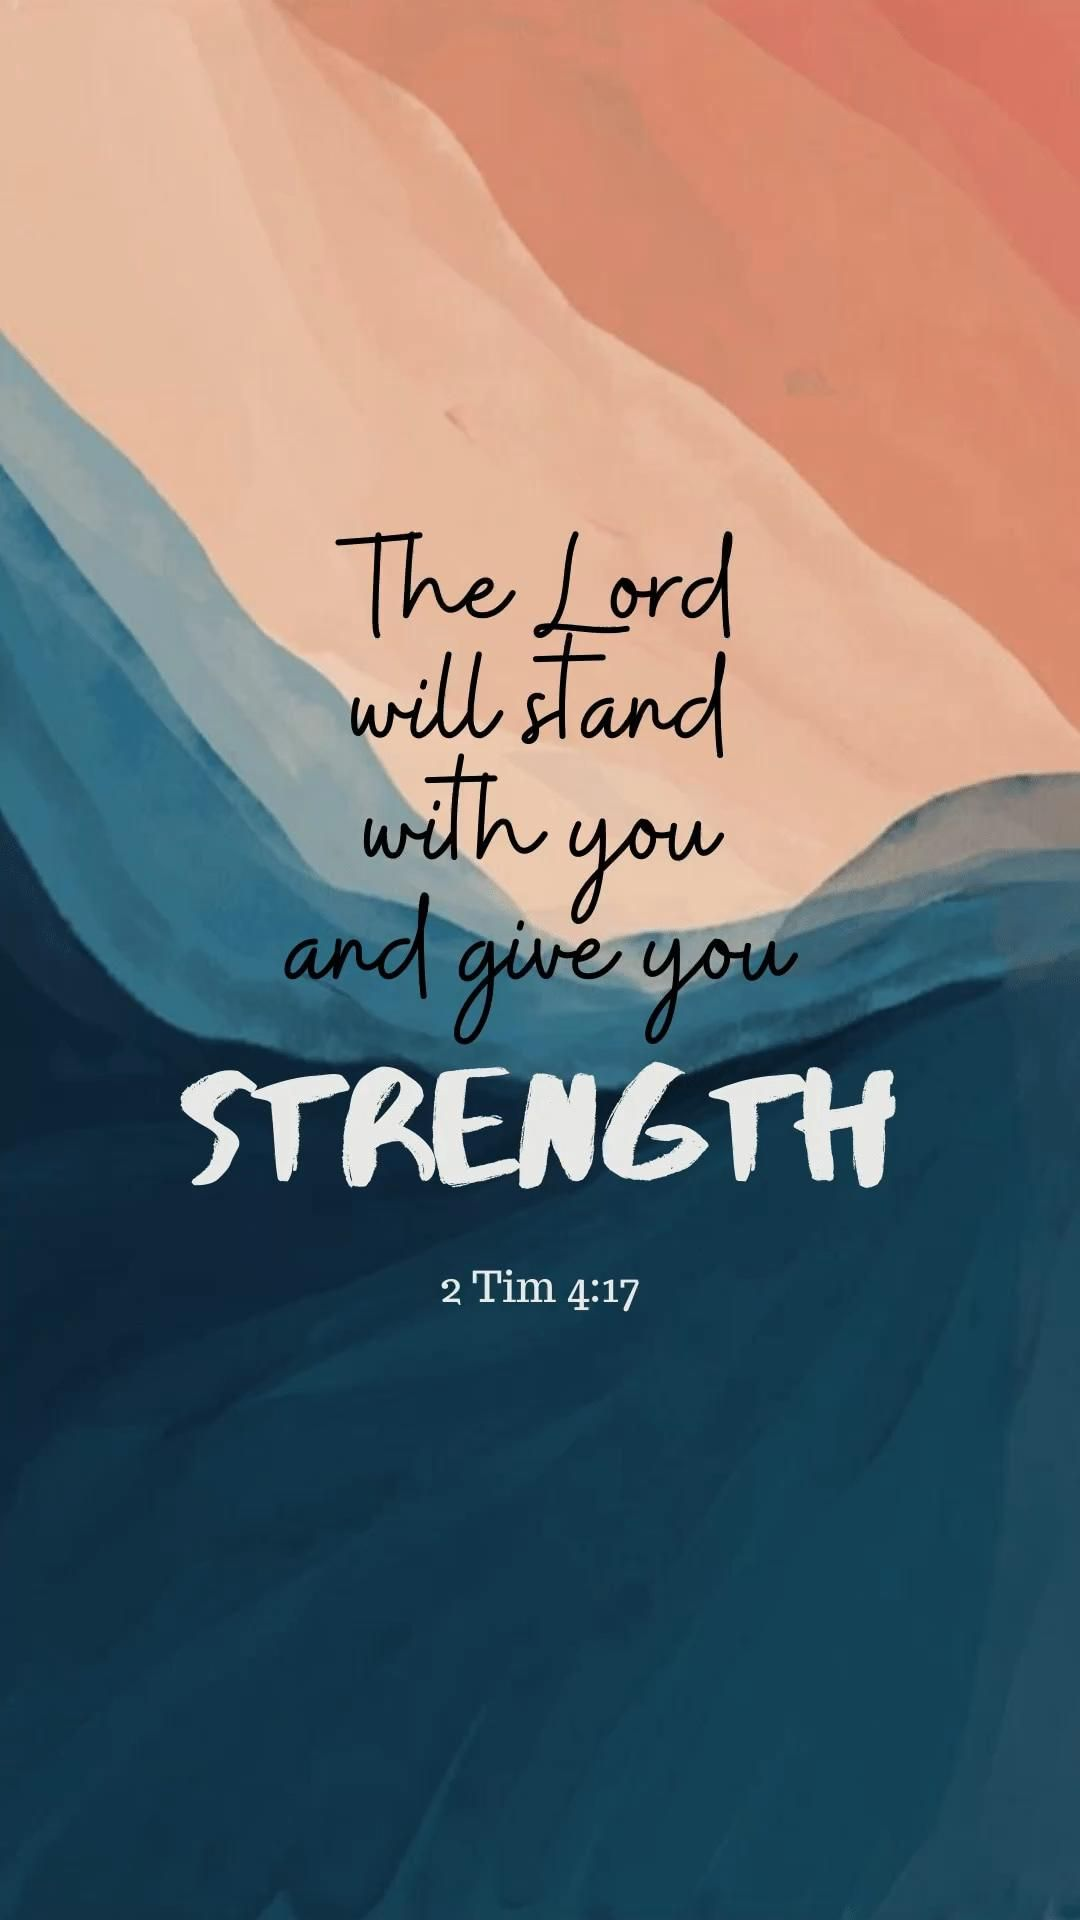 God is always with you to give you strength along the way:)